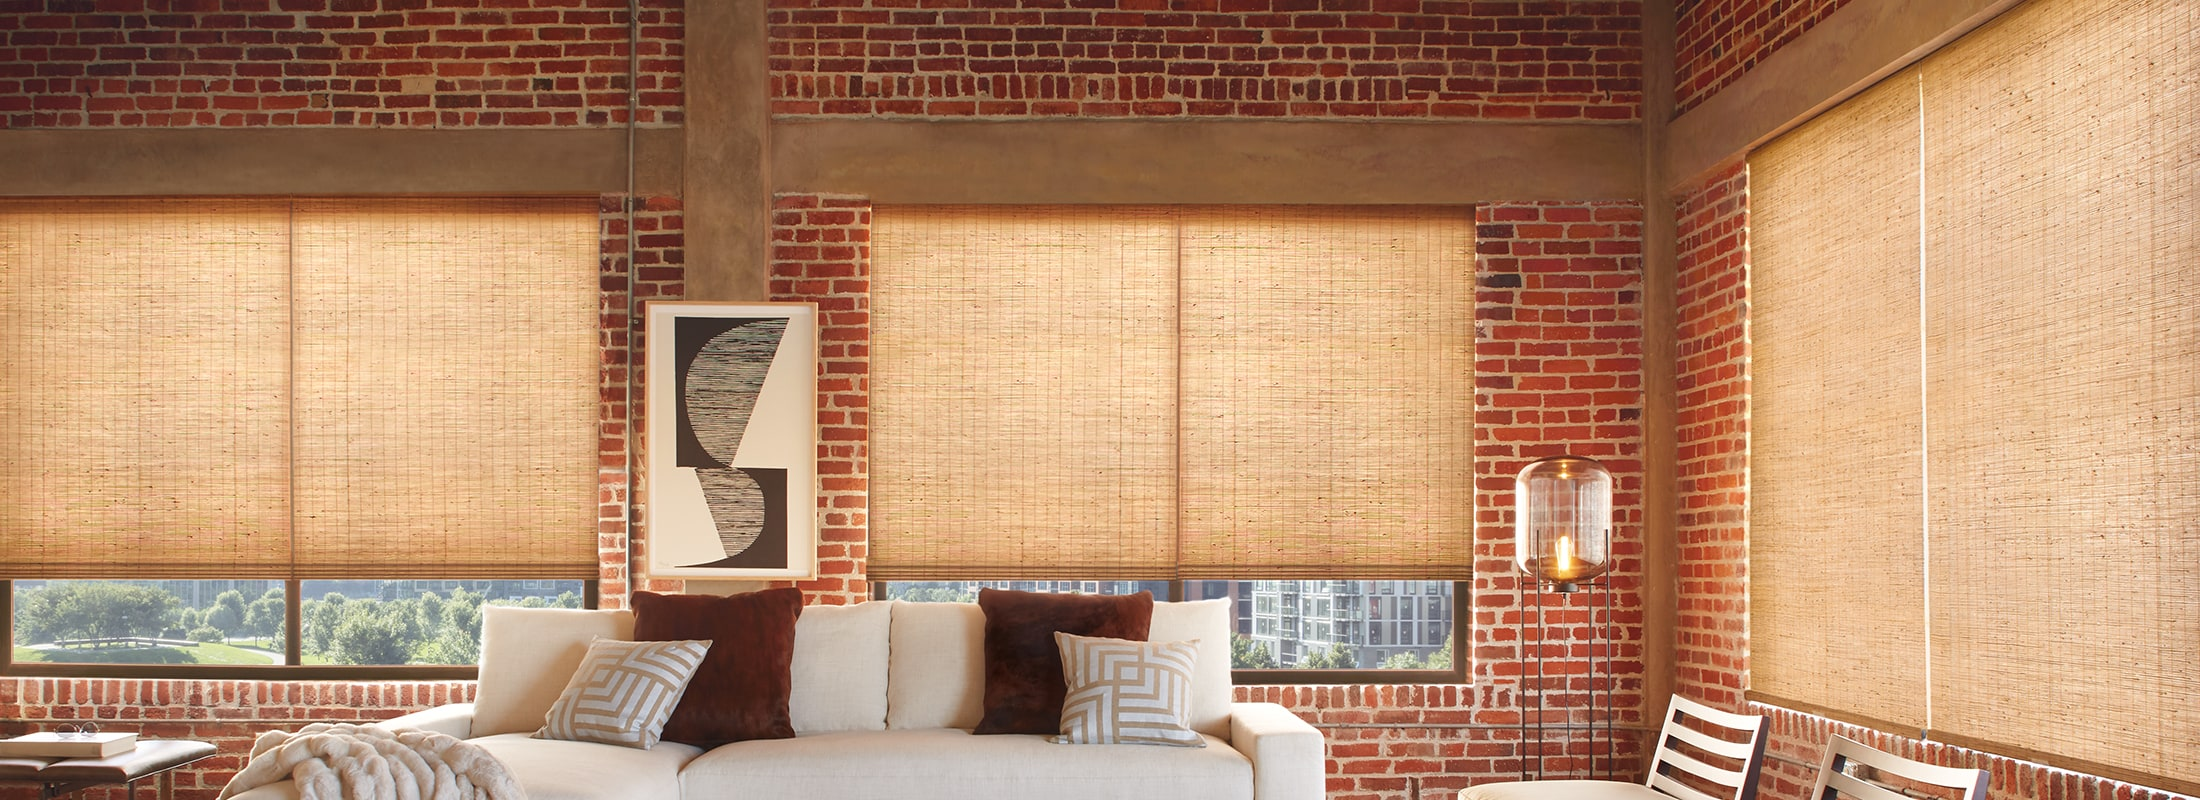 Shades of wood in Jute Forest Pecan - Provenance